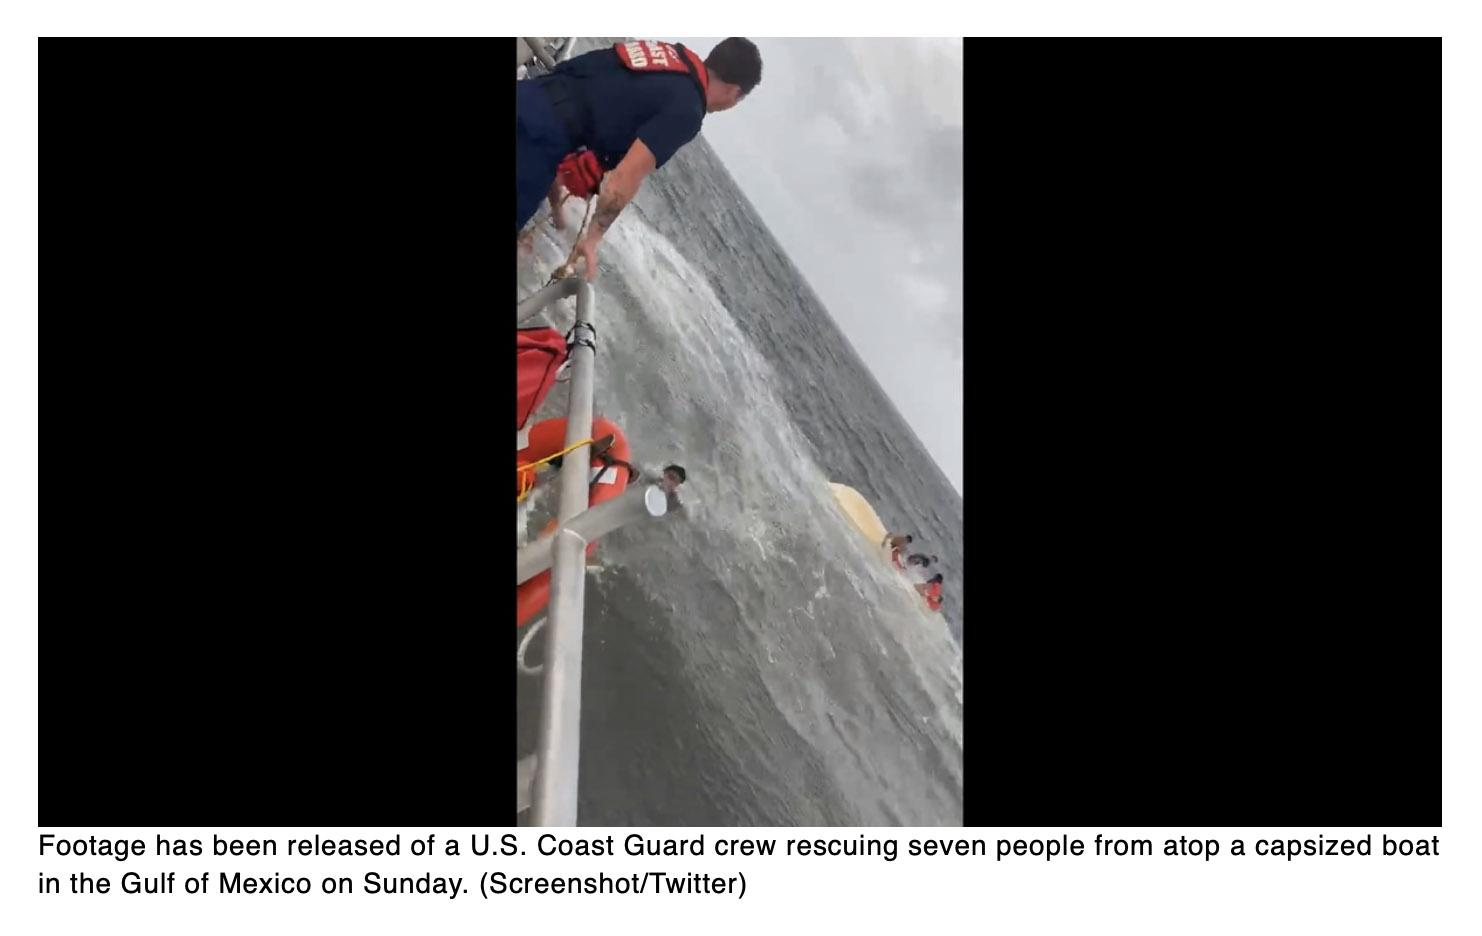 Watch the Coast Guard rescue seven people from a capsized boat